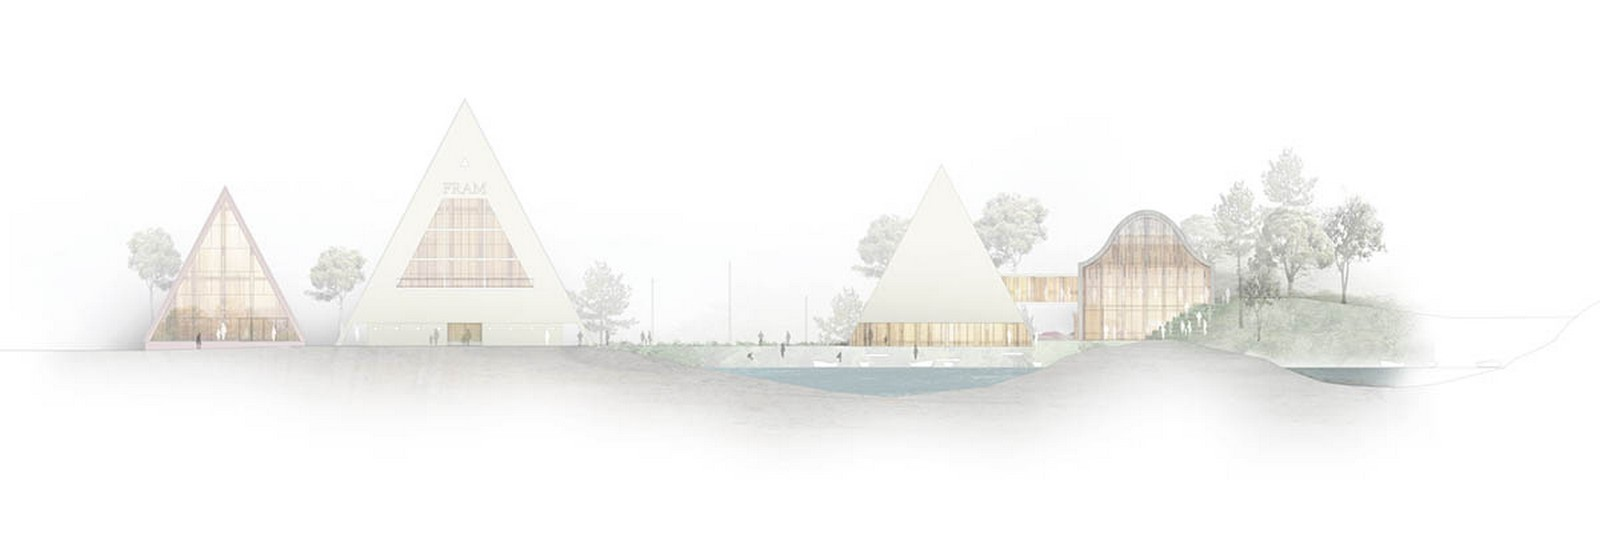 """New Extension Of Norway's Polar Exploration Museum """"FRAM"""" to be designed by Reiulf Ramstad Arkitekter - Sheet8"""